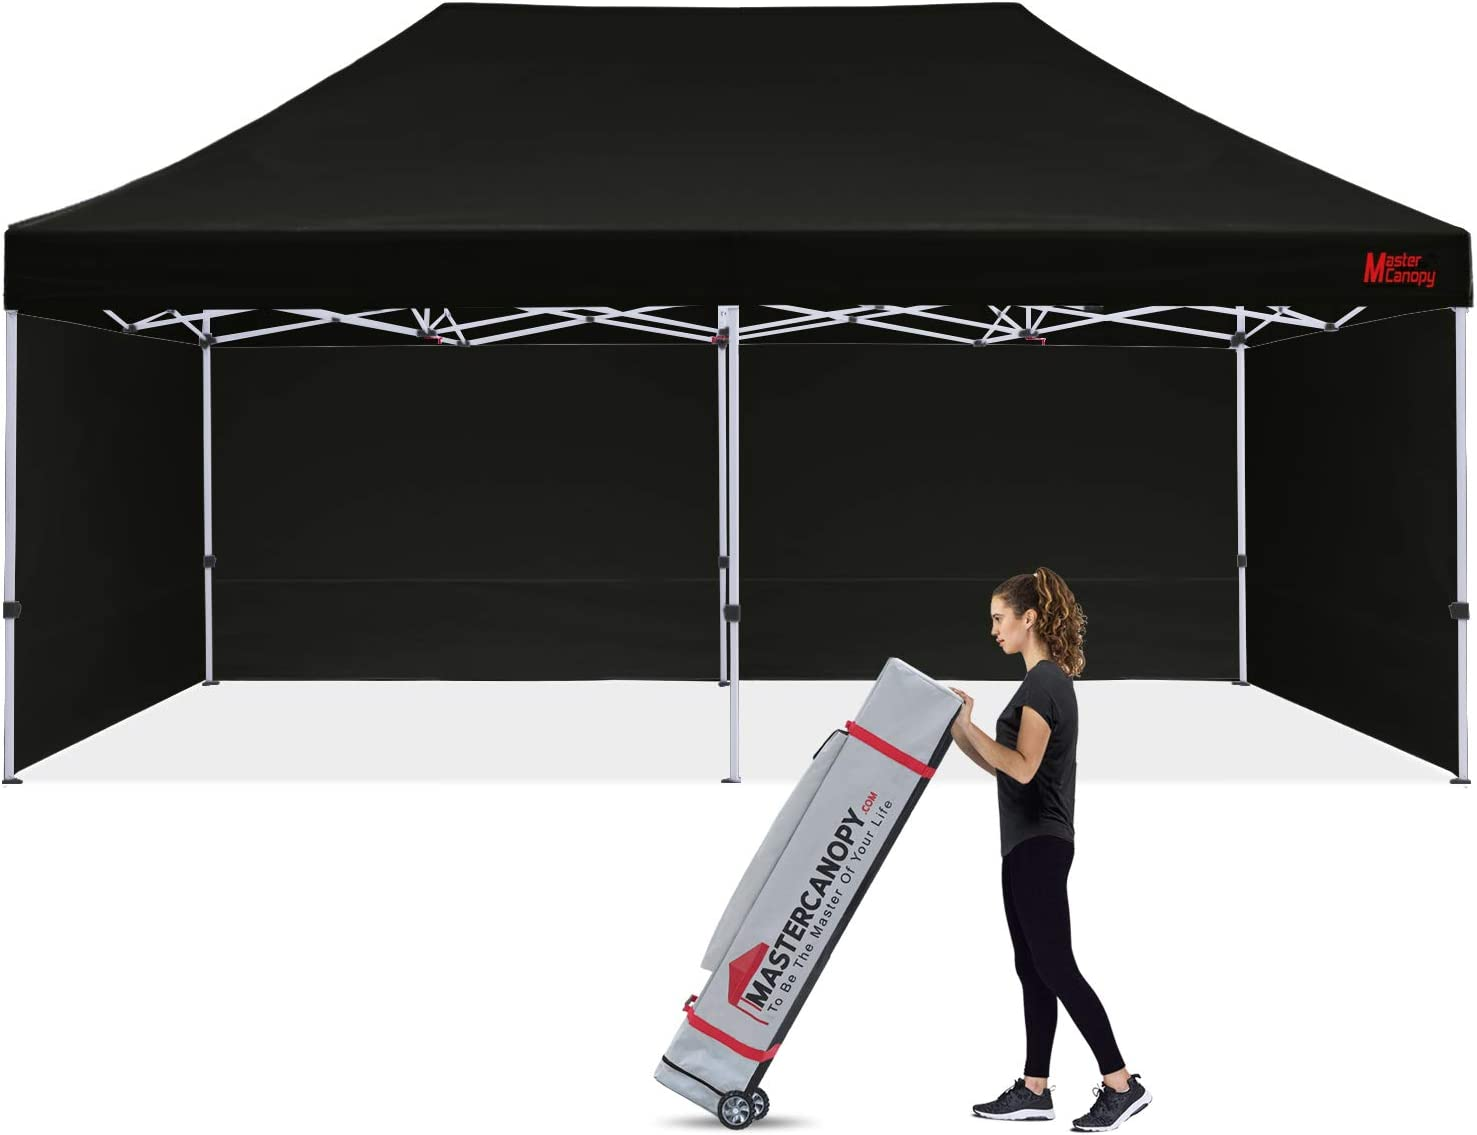 MASTERCANOPY Durable Pop-up Canopy Tent 10x20 Heavy Duty Instant Canopy with Sidewalls (Black)